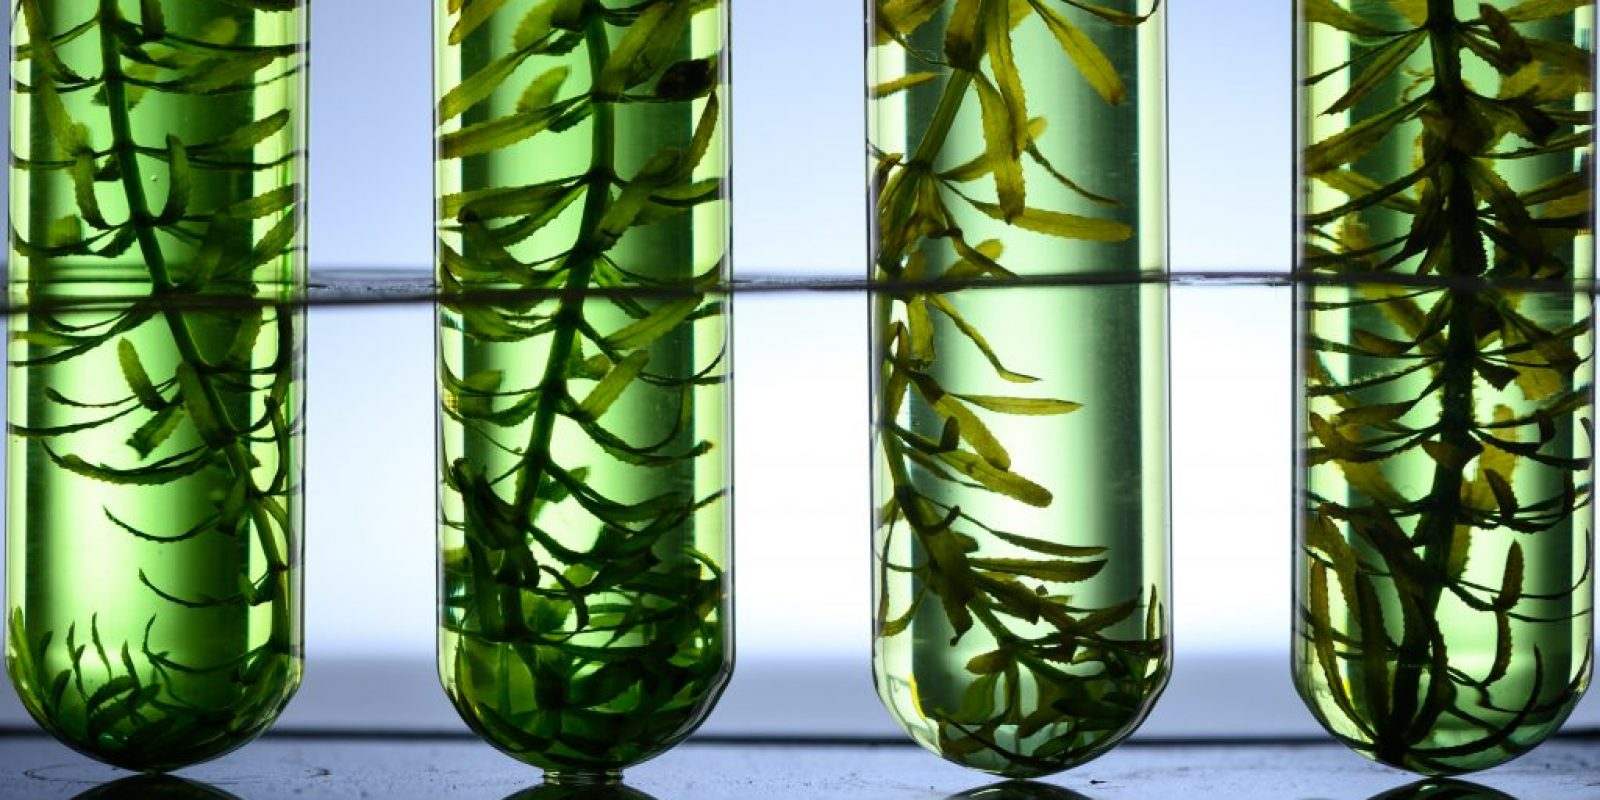 Seaweed biofuel: the benefits and challenges